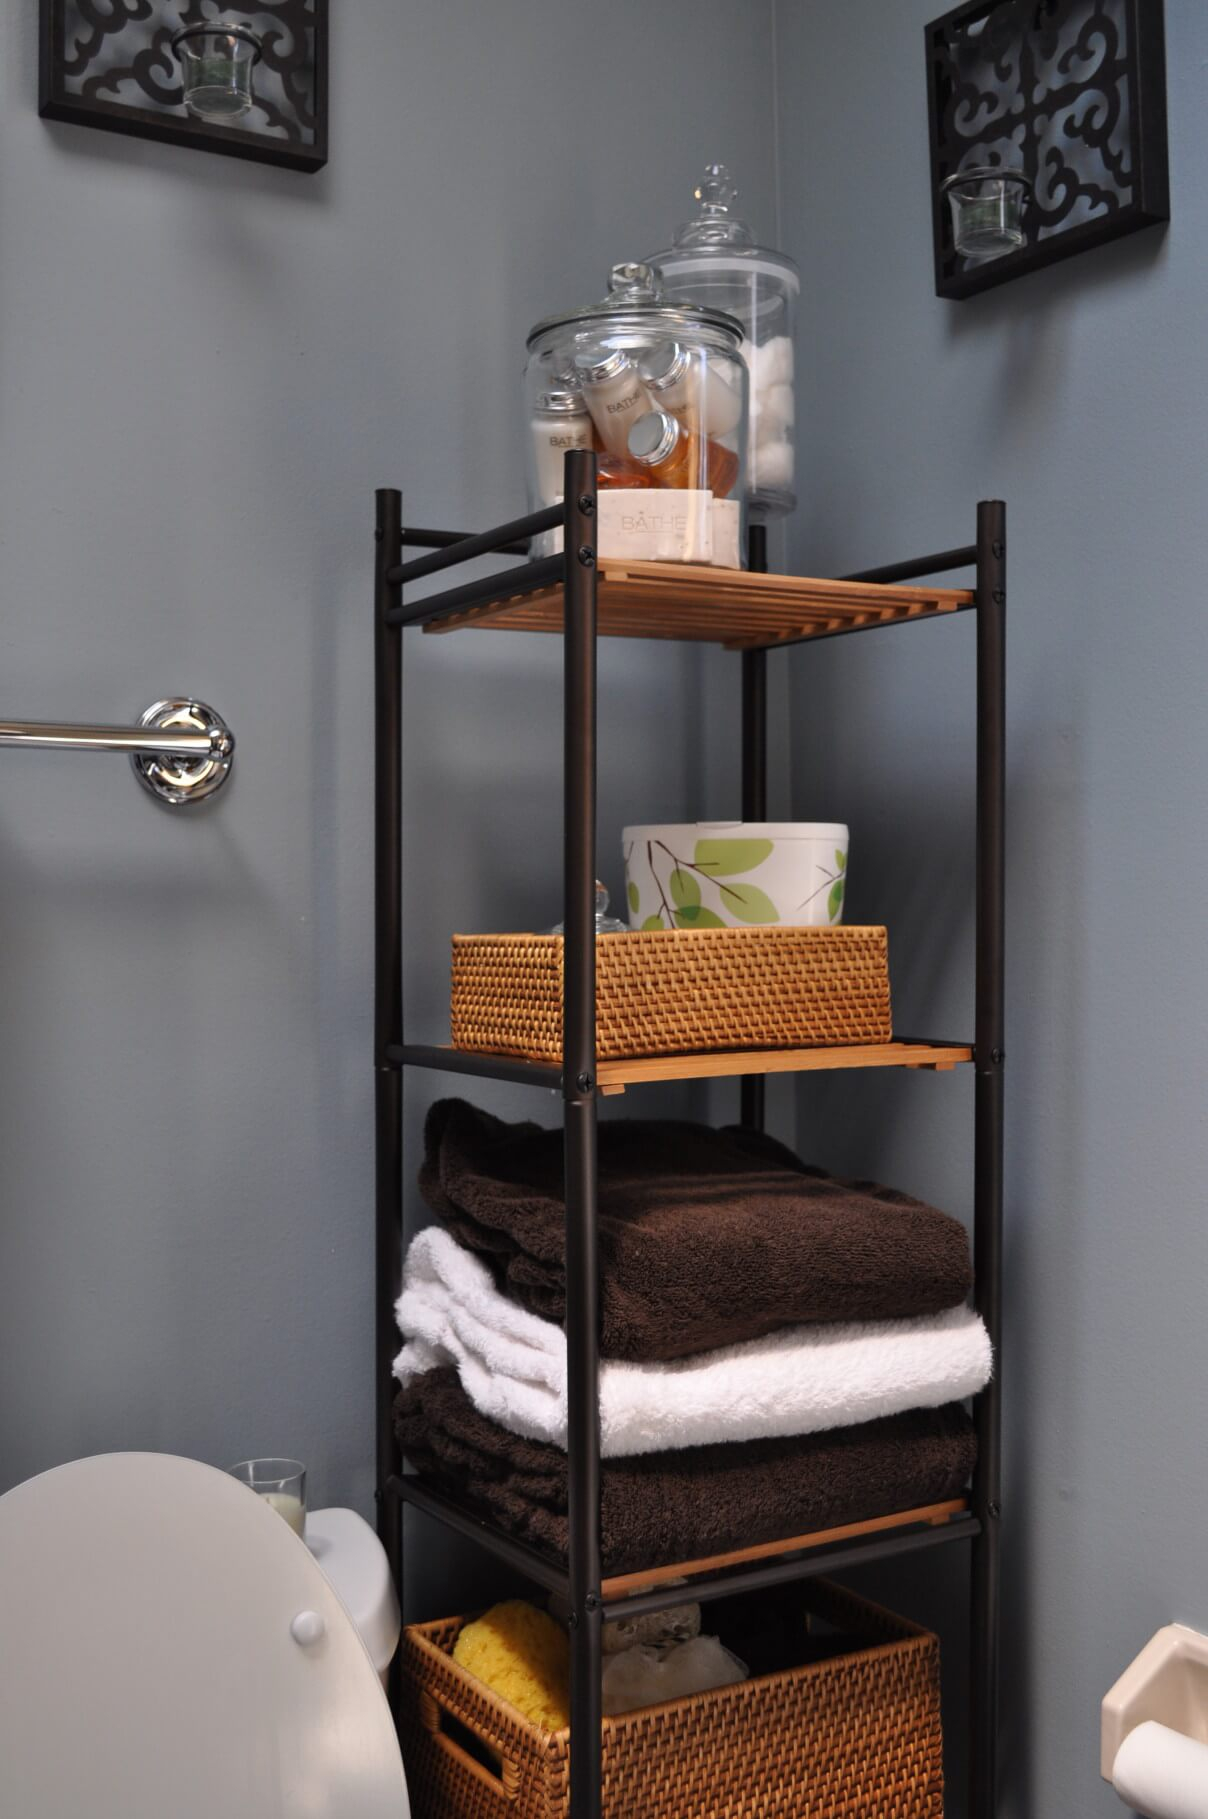 44 Best Small Bathroom Storage Ideas And Tips For 2019 intended for dimensions 1208 X 1819